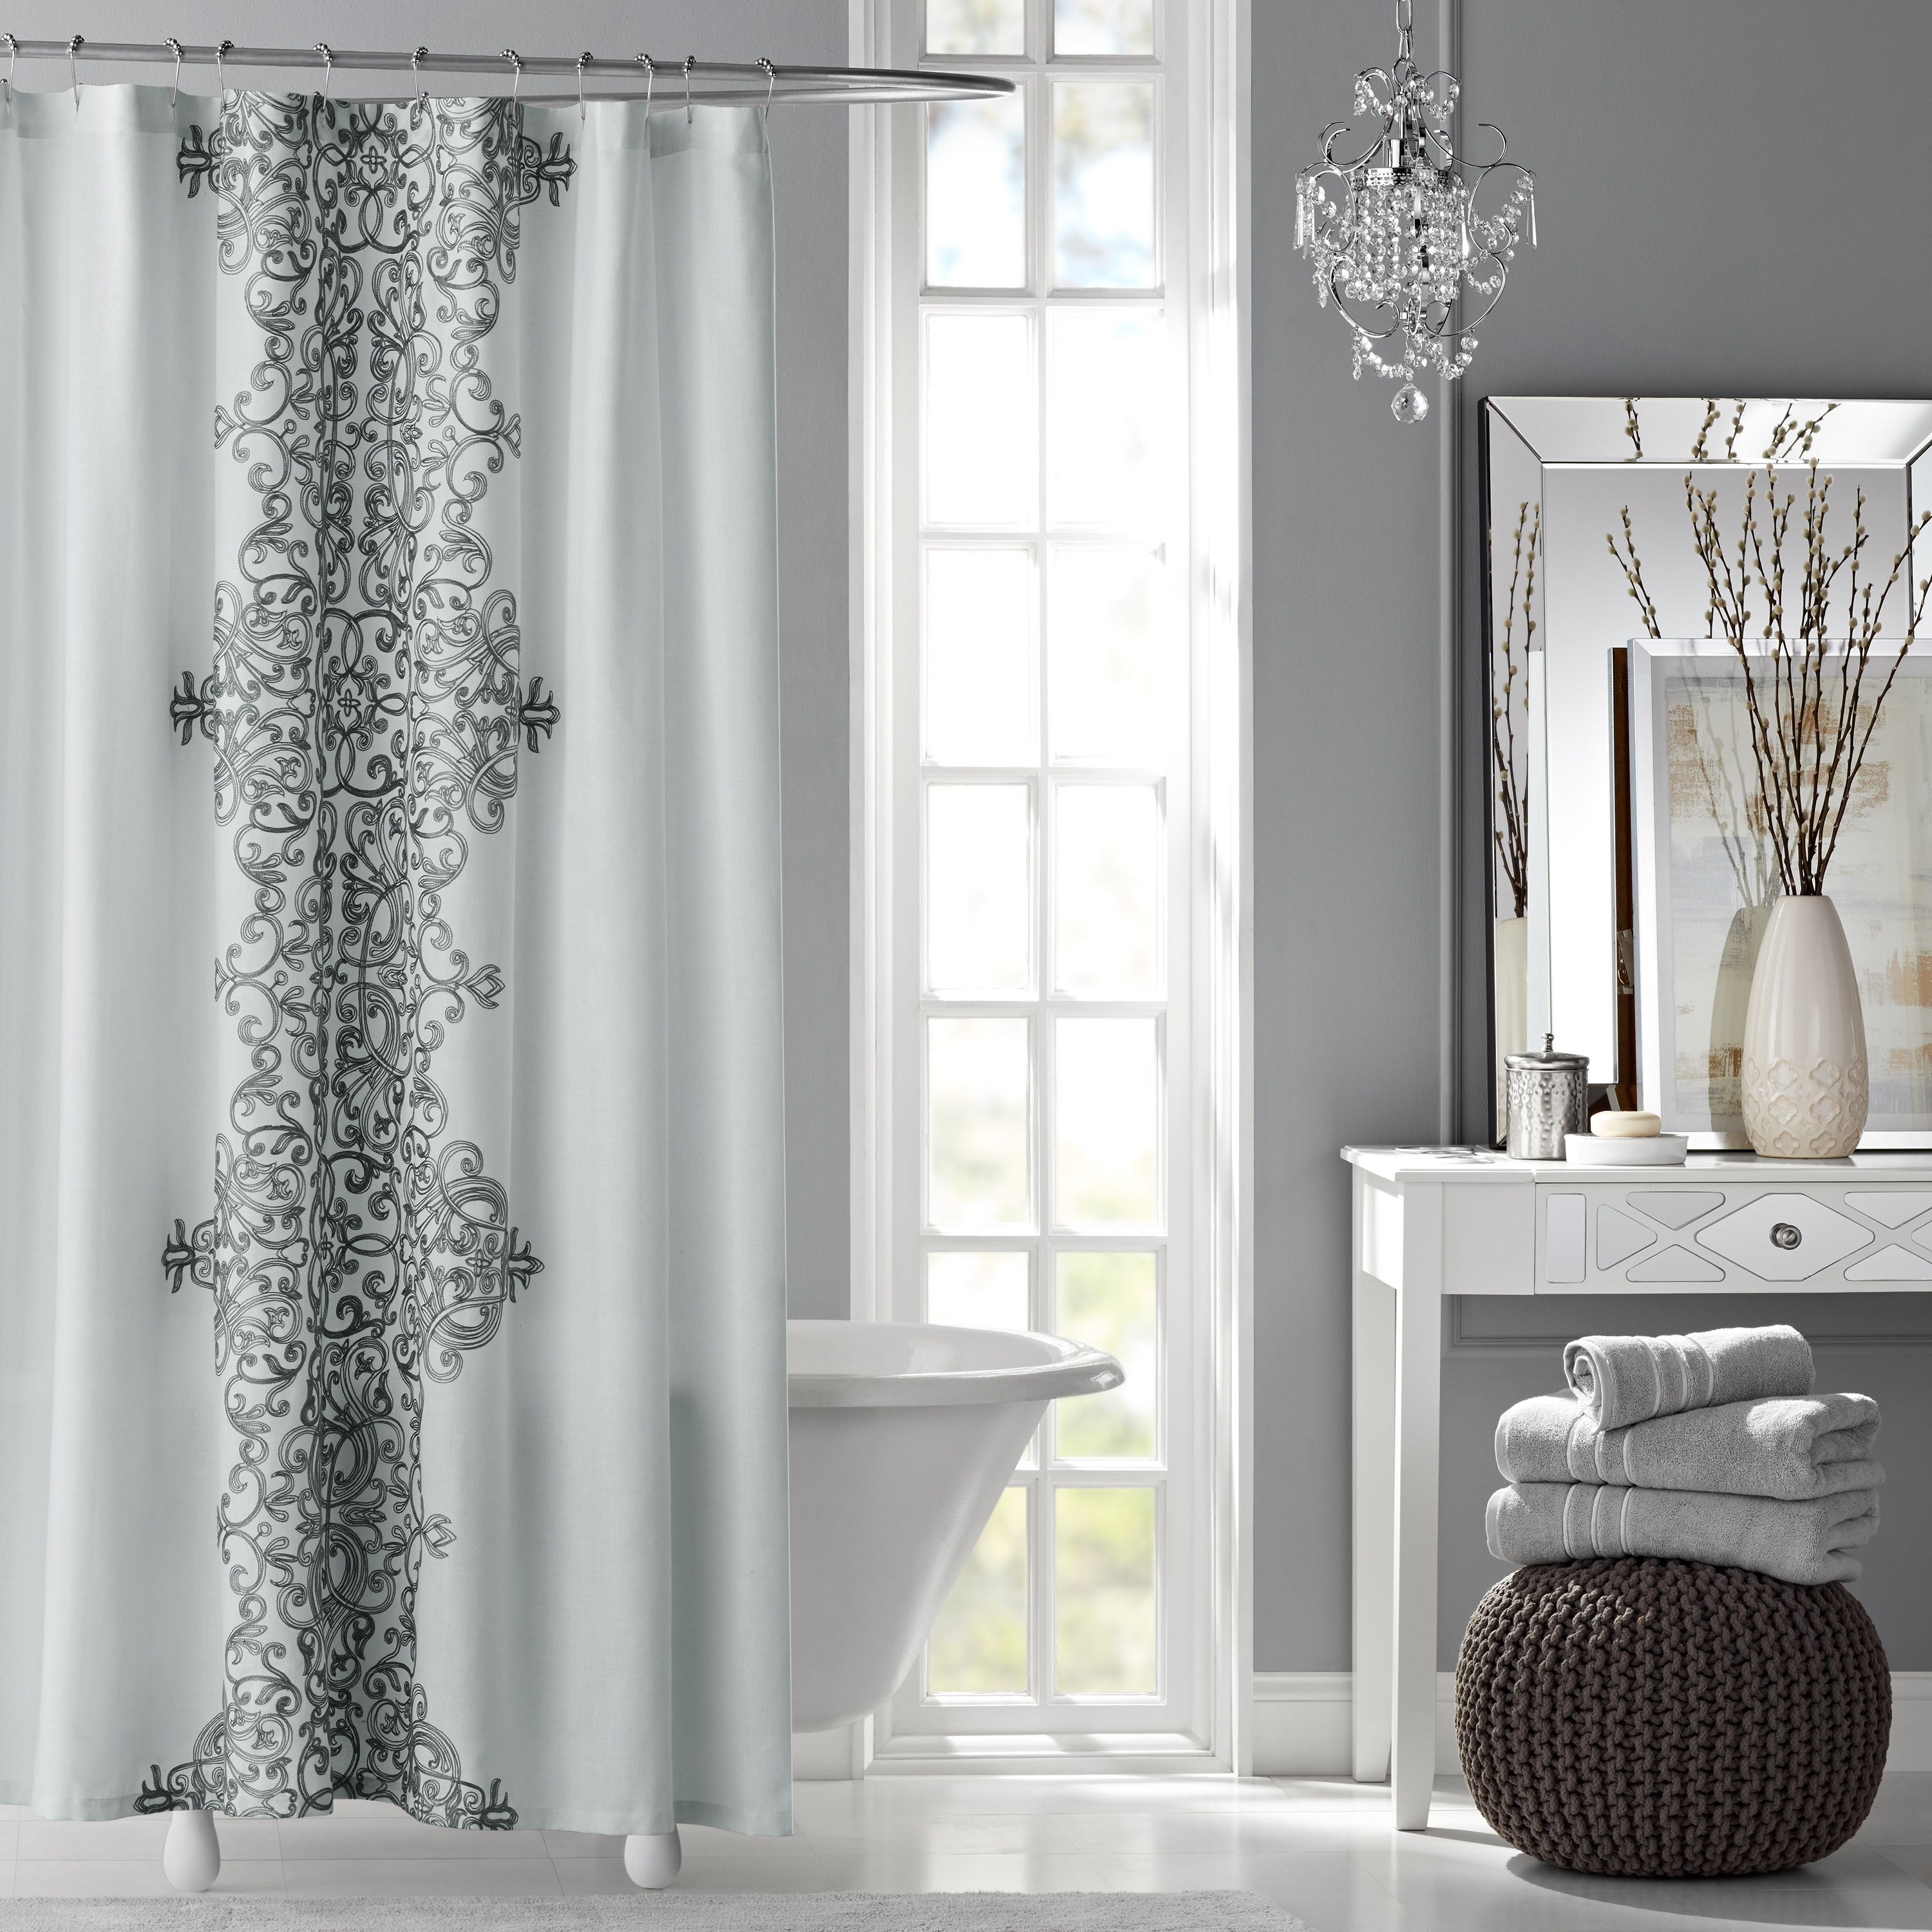 Hotel Style Manchester Embroidered Fabric Shower Curtain